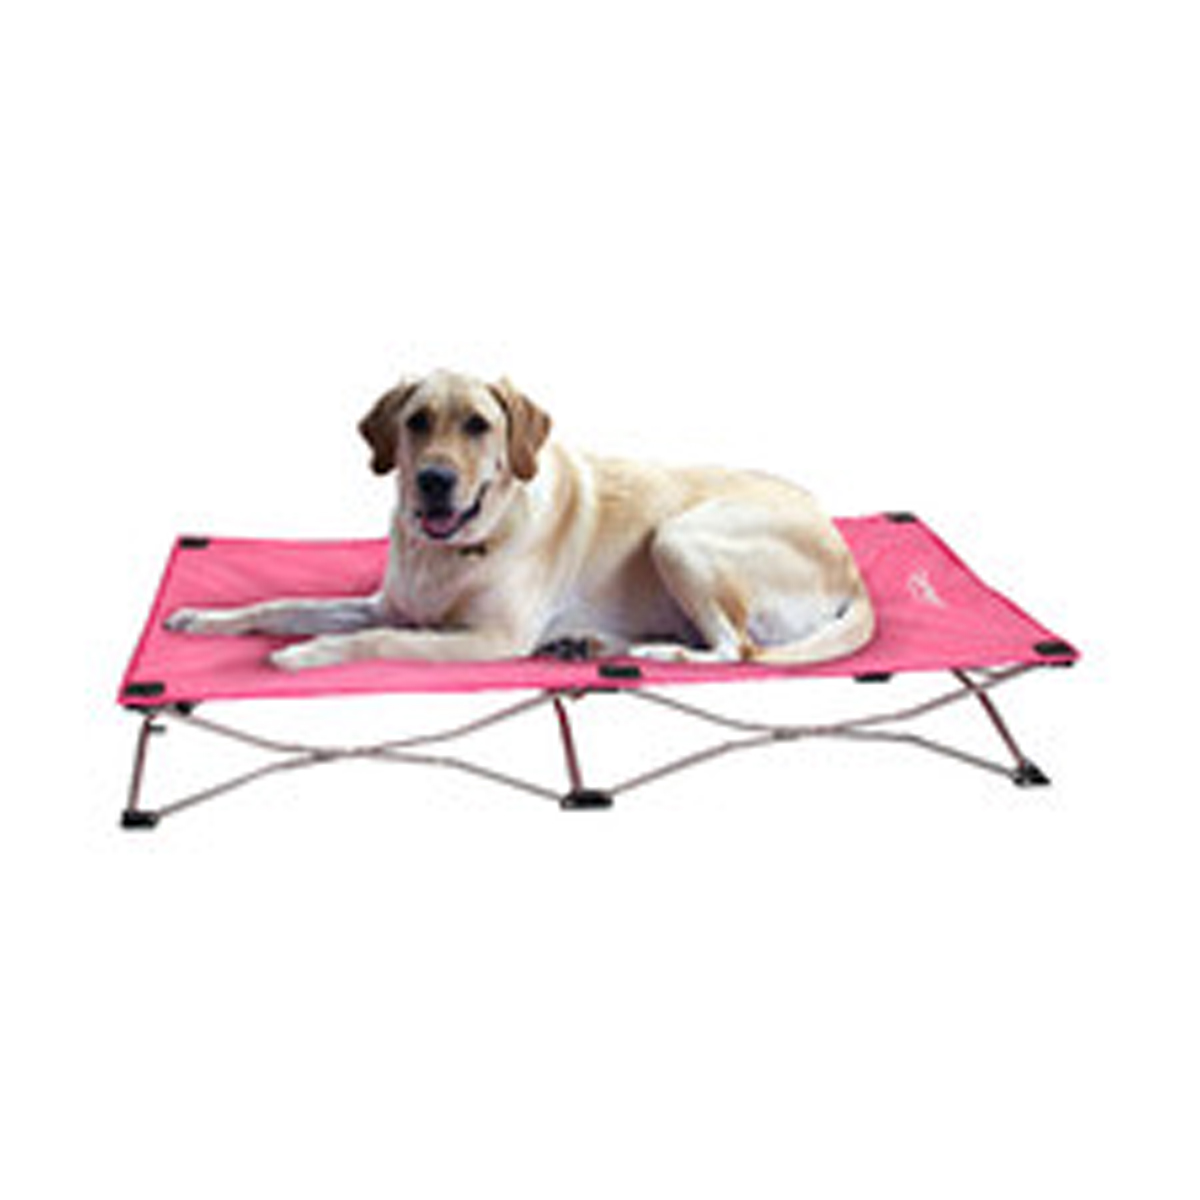 Carlson Portable Pup Travel Dog Bed - Pink